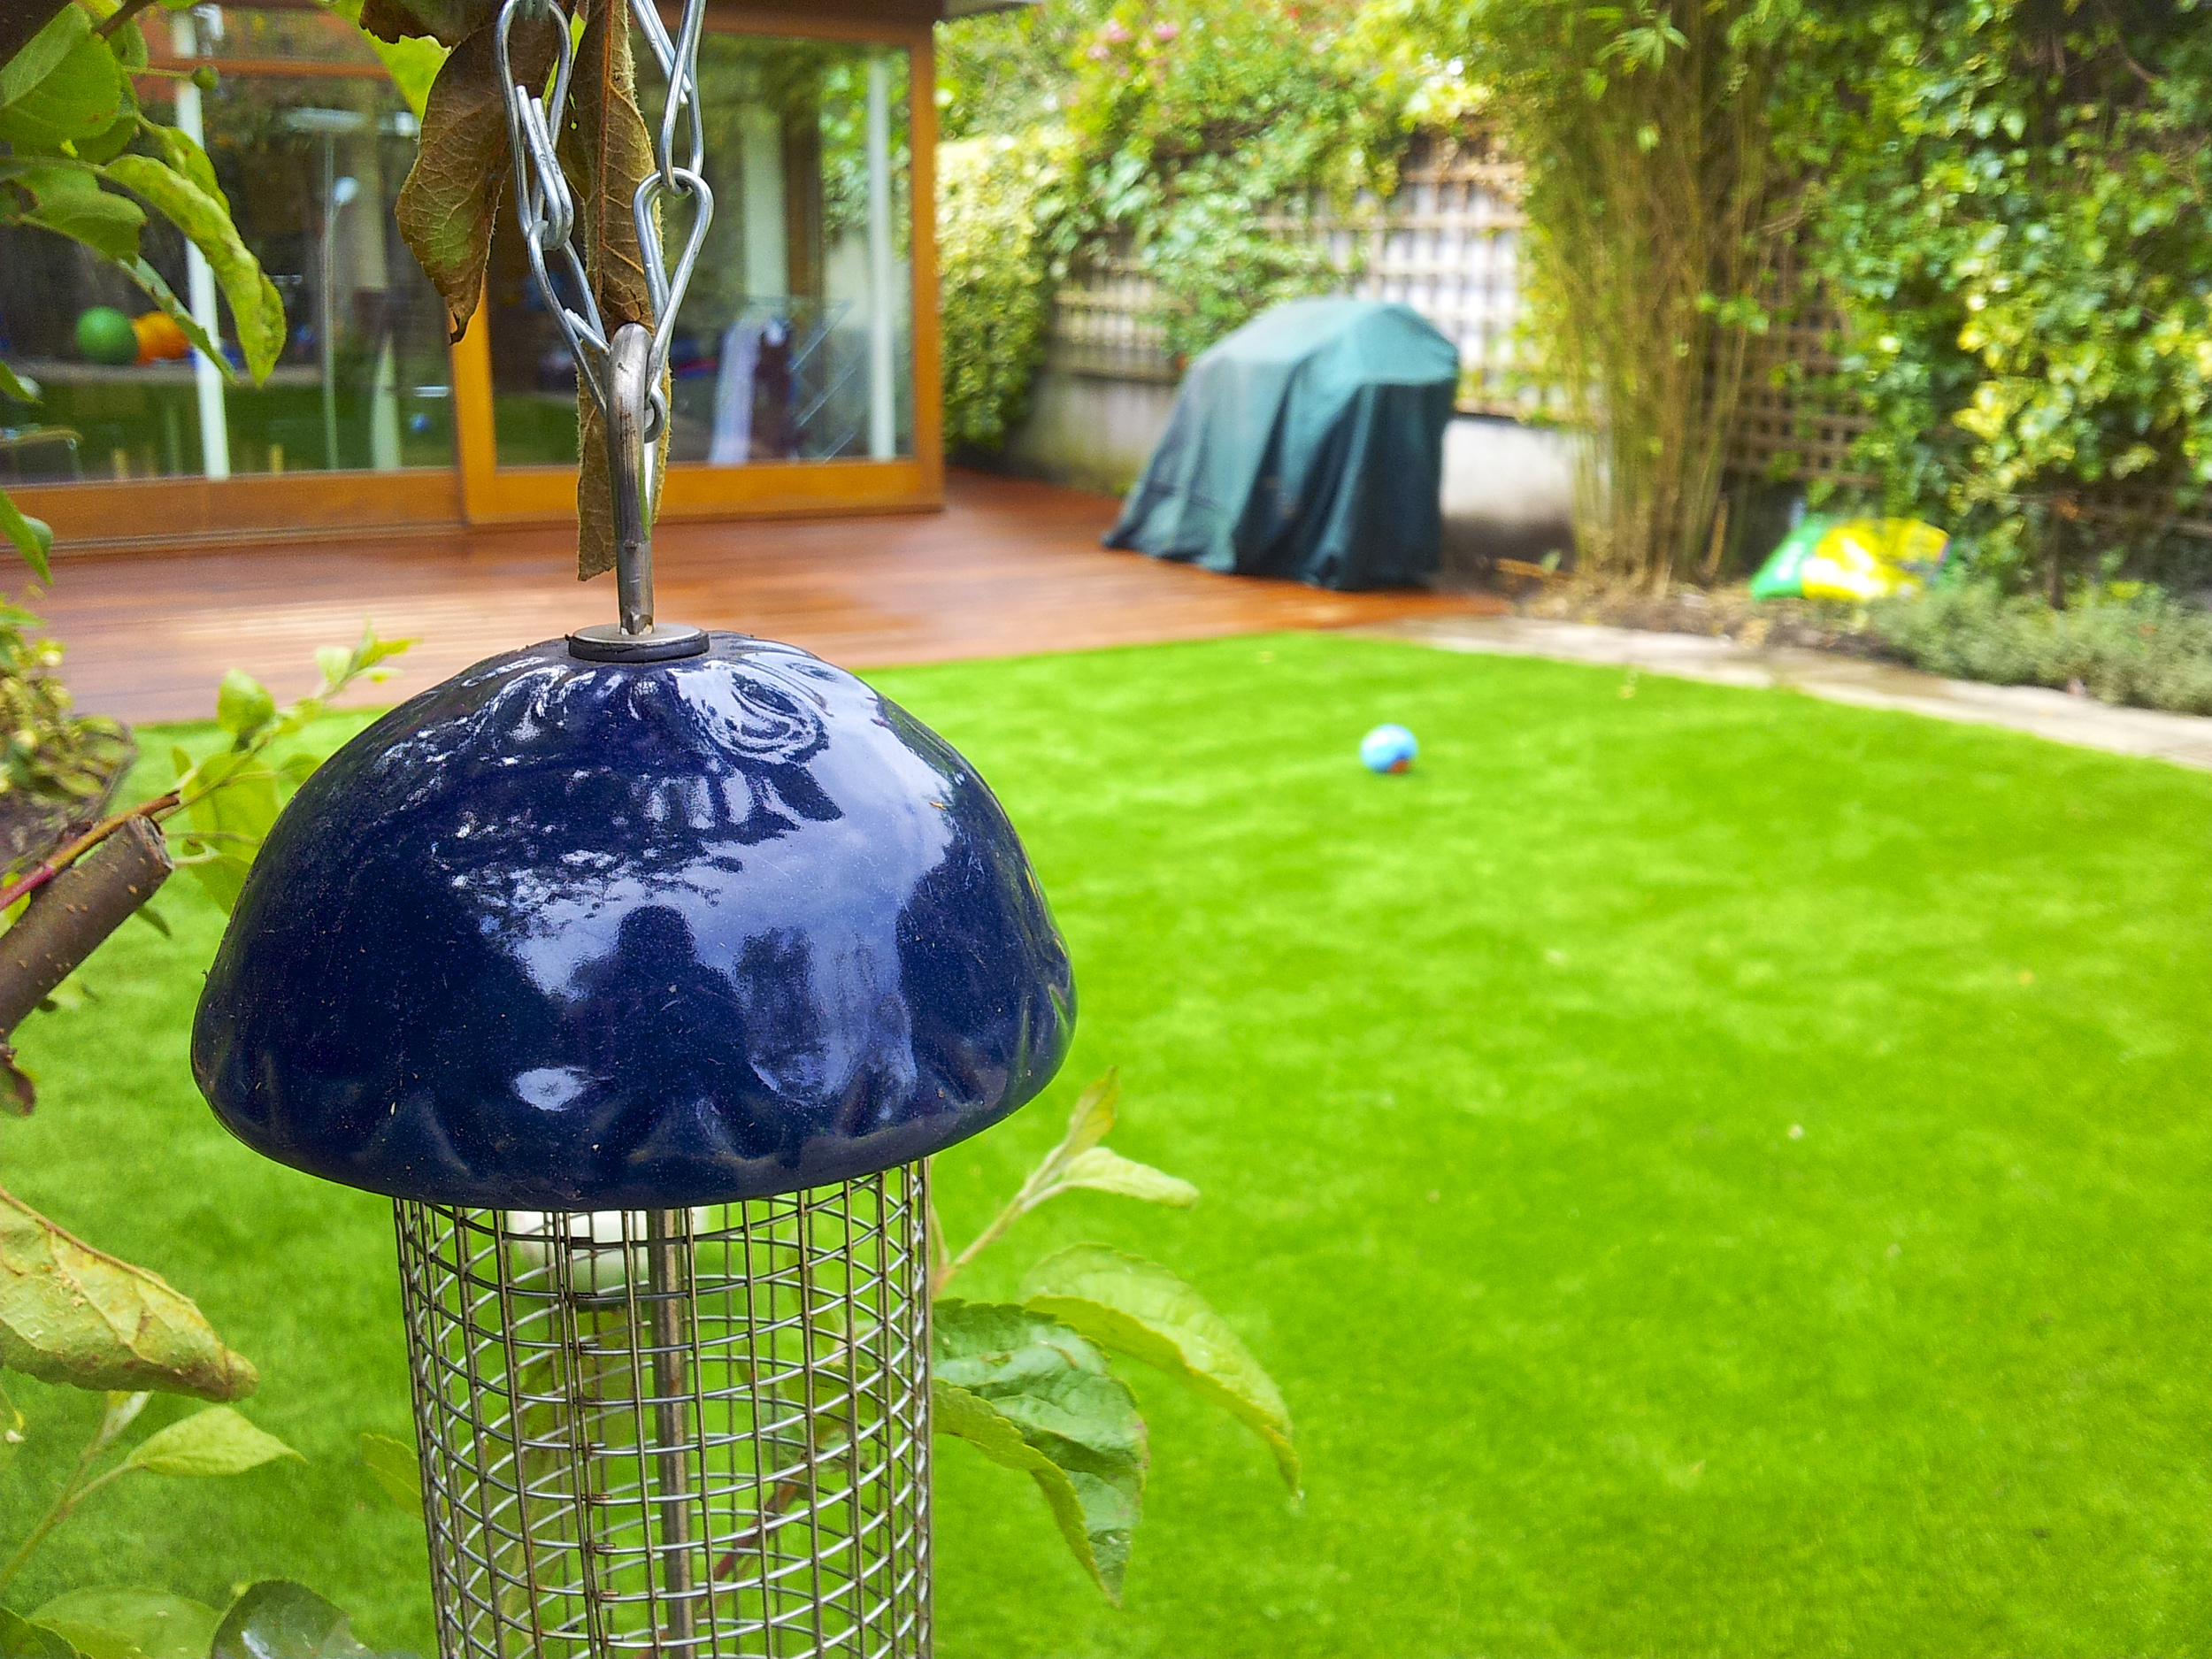 TigerTurf Lawn and Decking